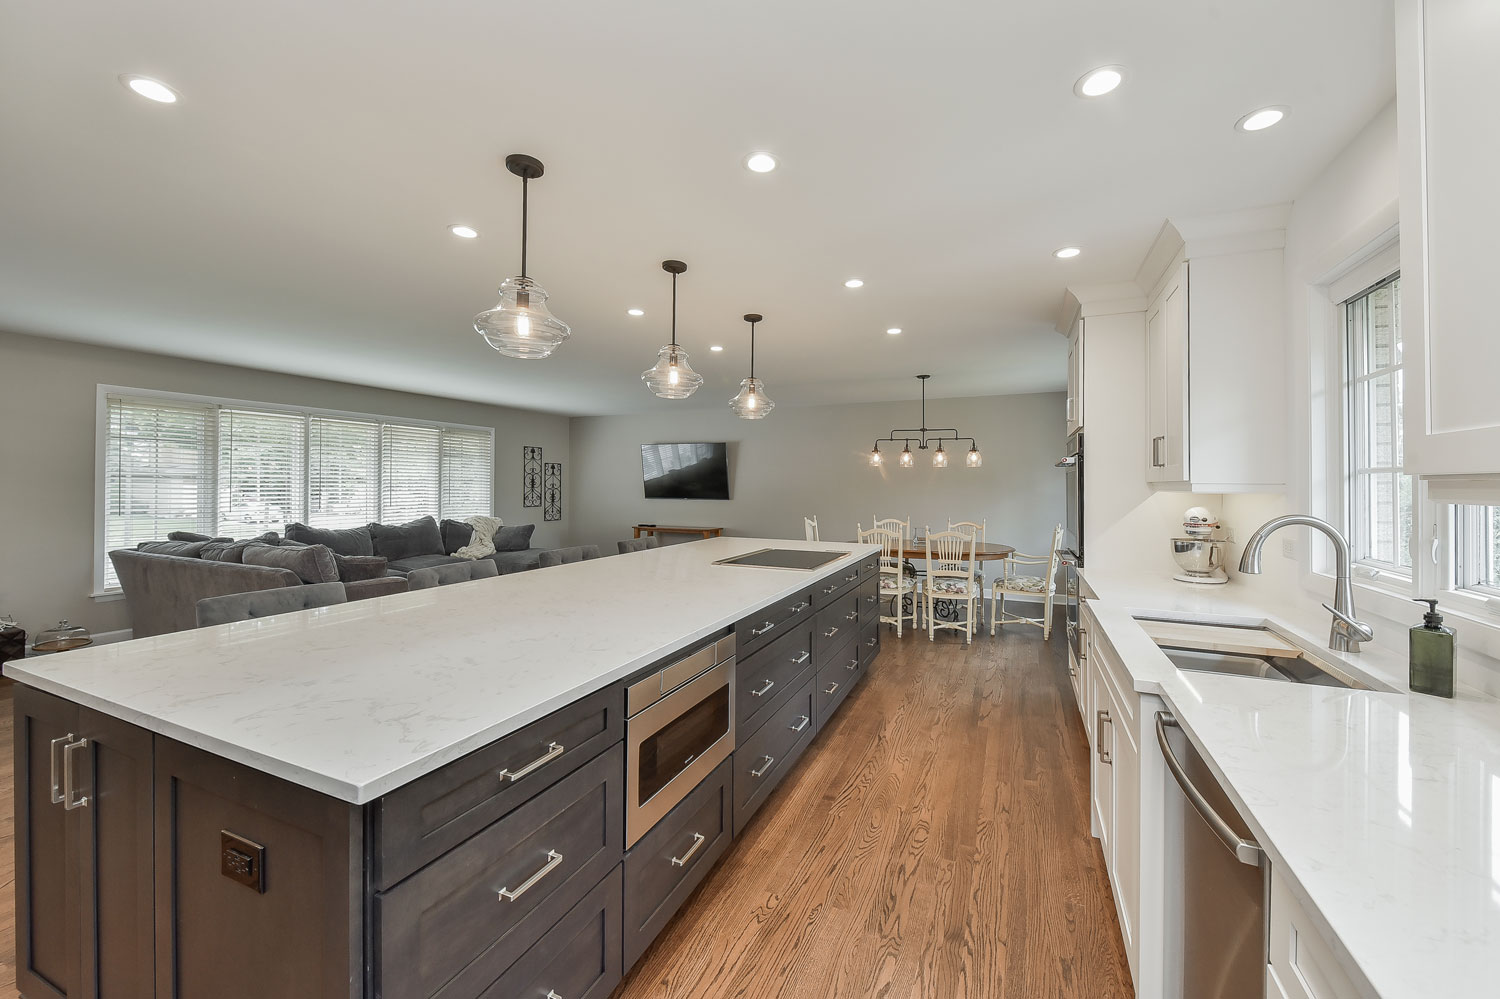 Open Floor Plan Kitchen, Living Room, White Cabinets - Sebring Services